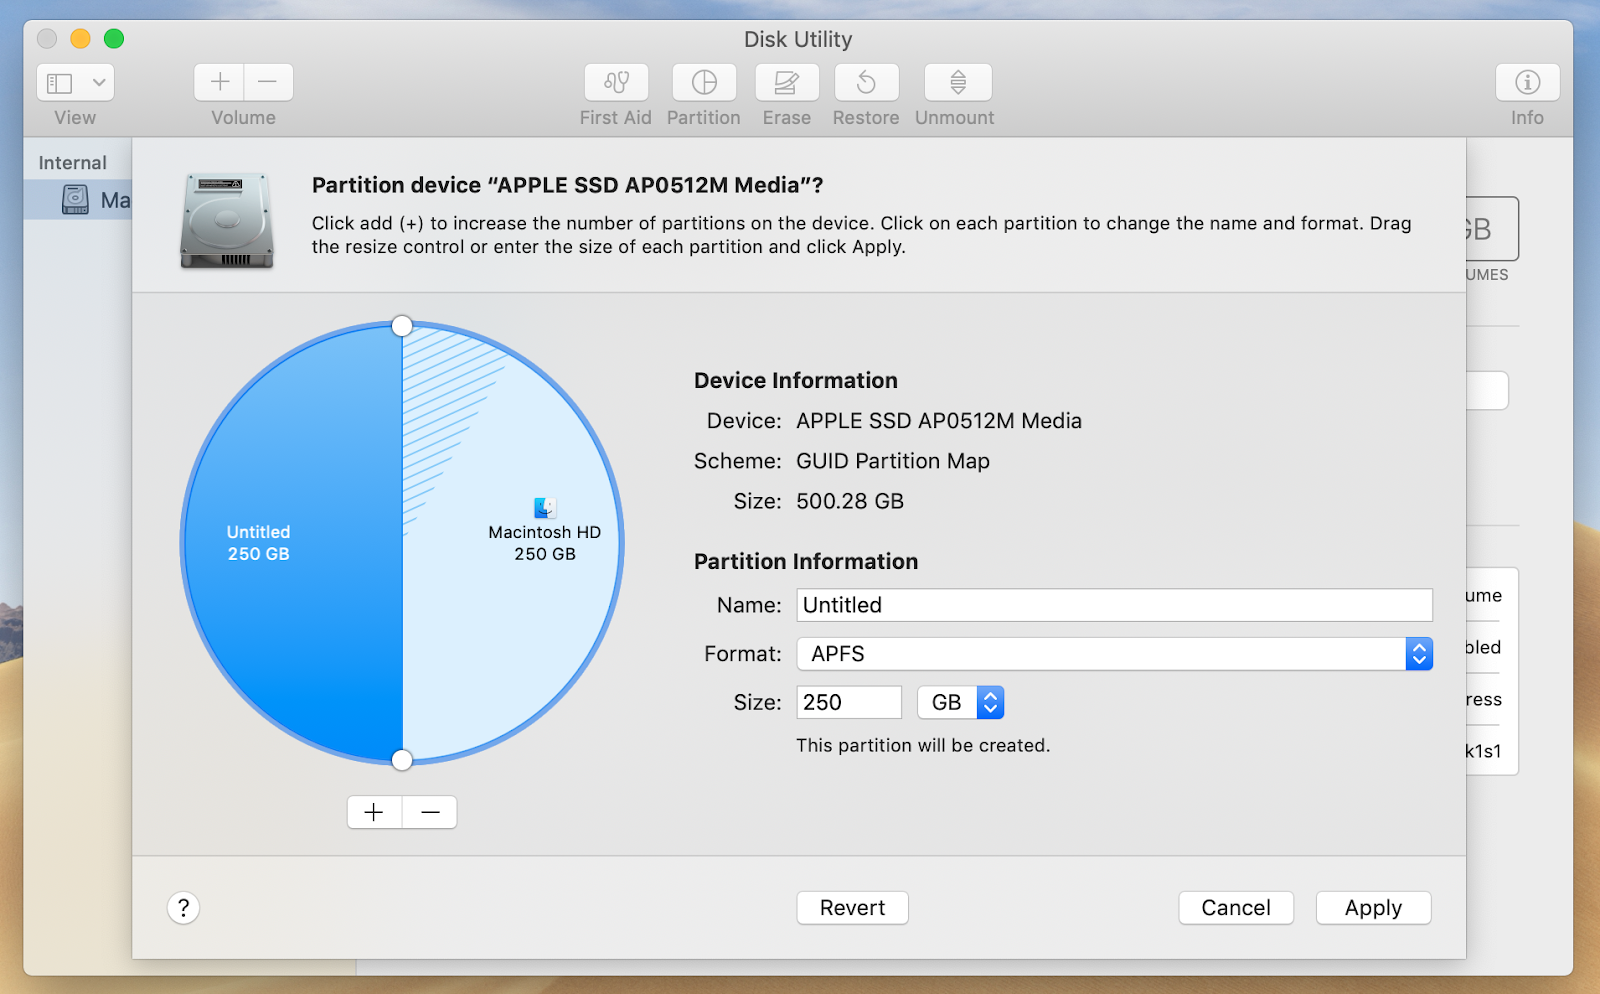 Disk Utility: Partition information